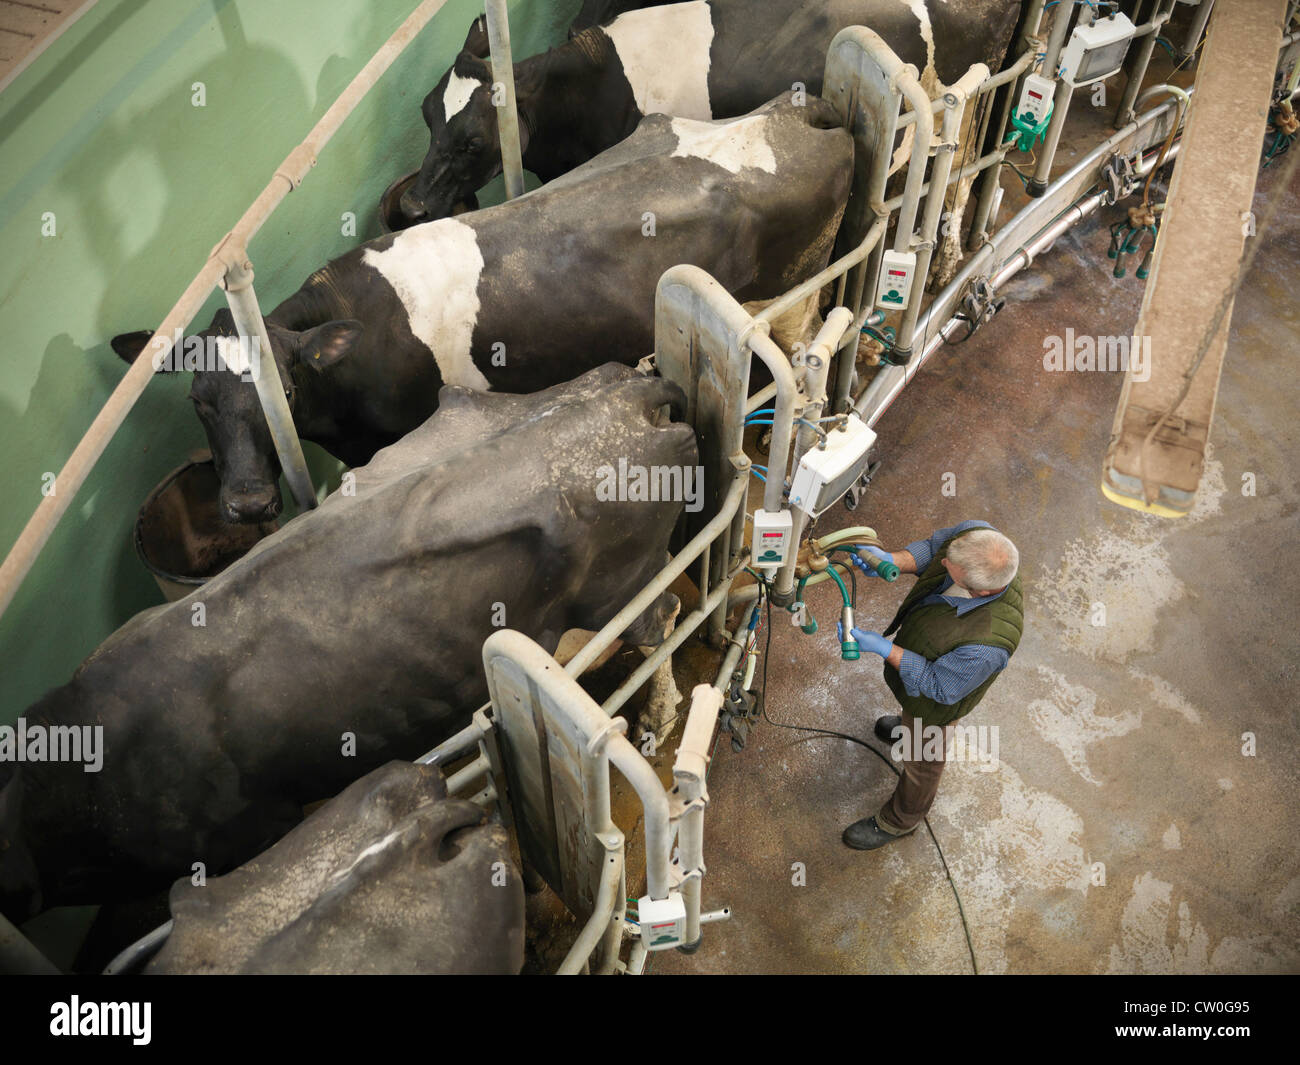 Farmer working in milking parlor - Stock Image